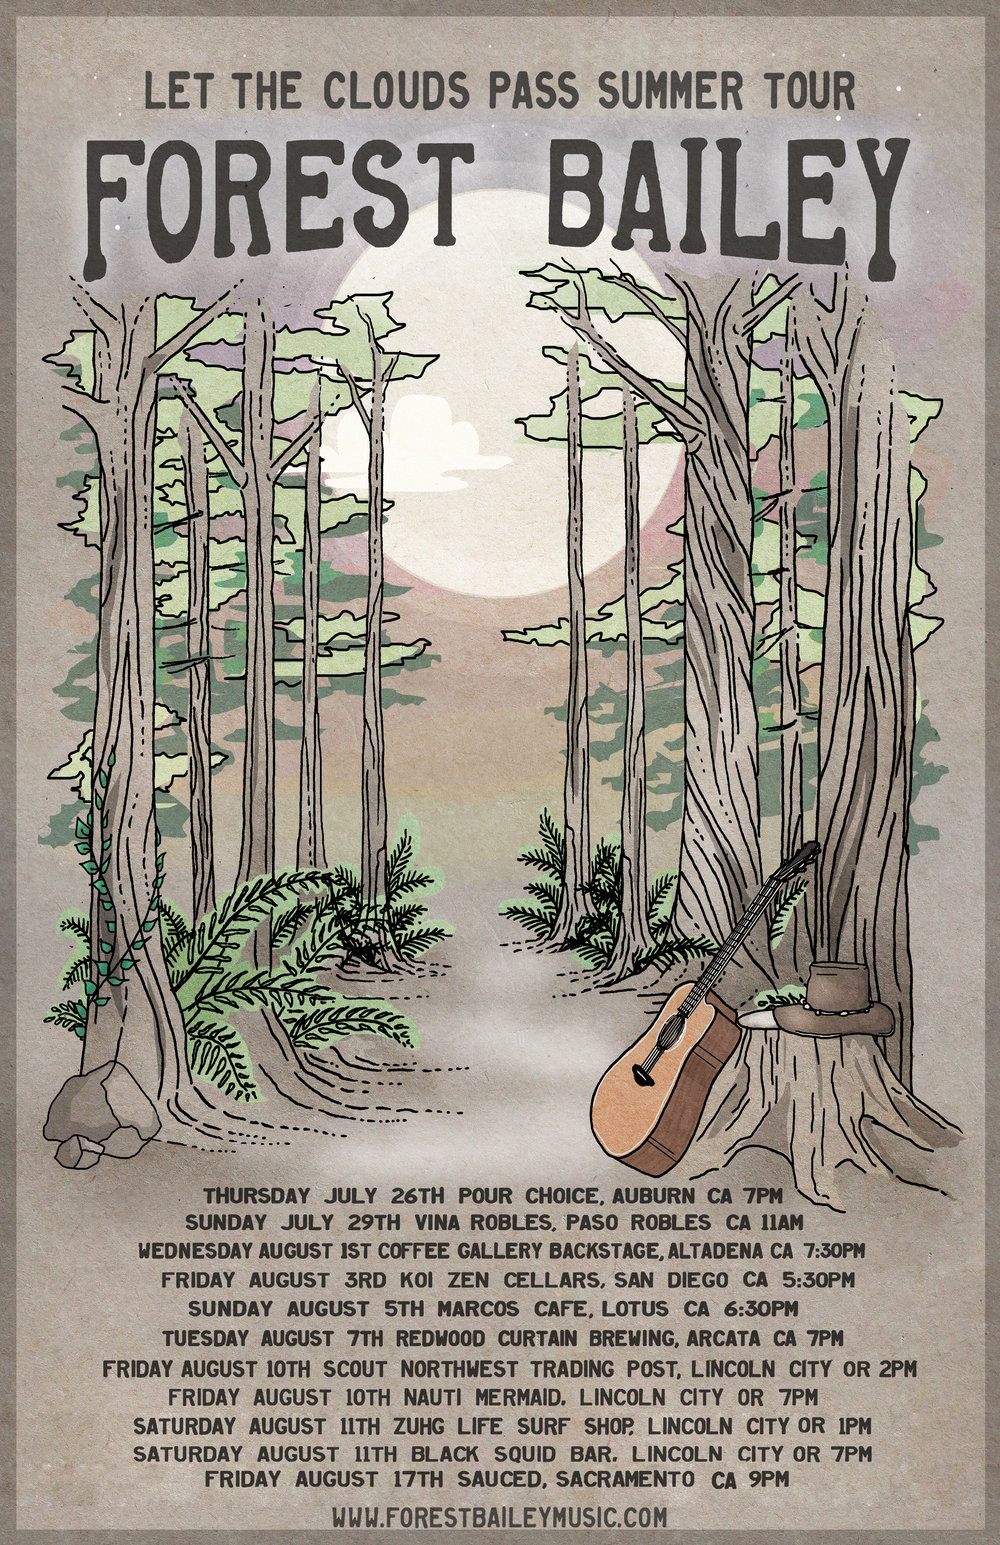 ForestBailey_TourPoster11_x17_(1).jpg